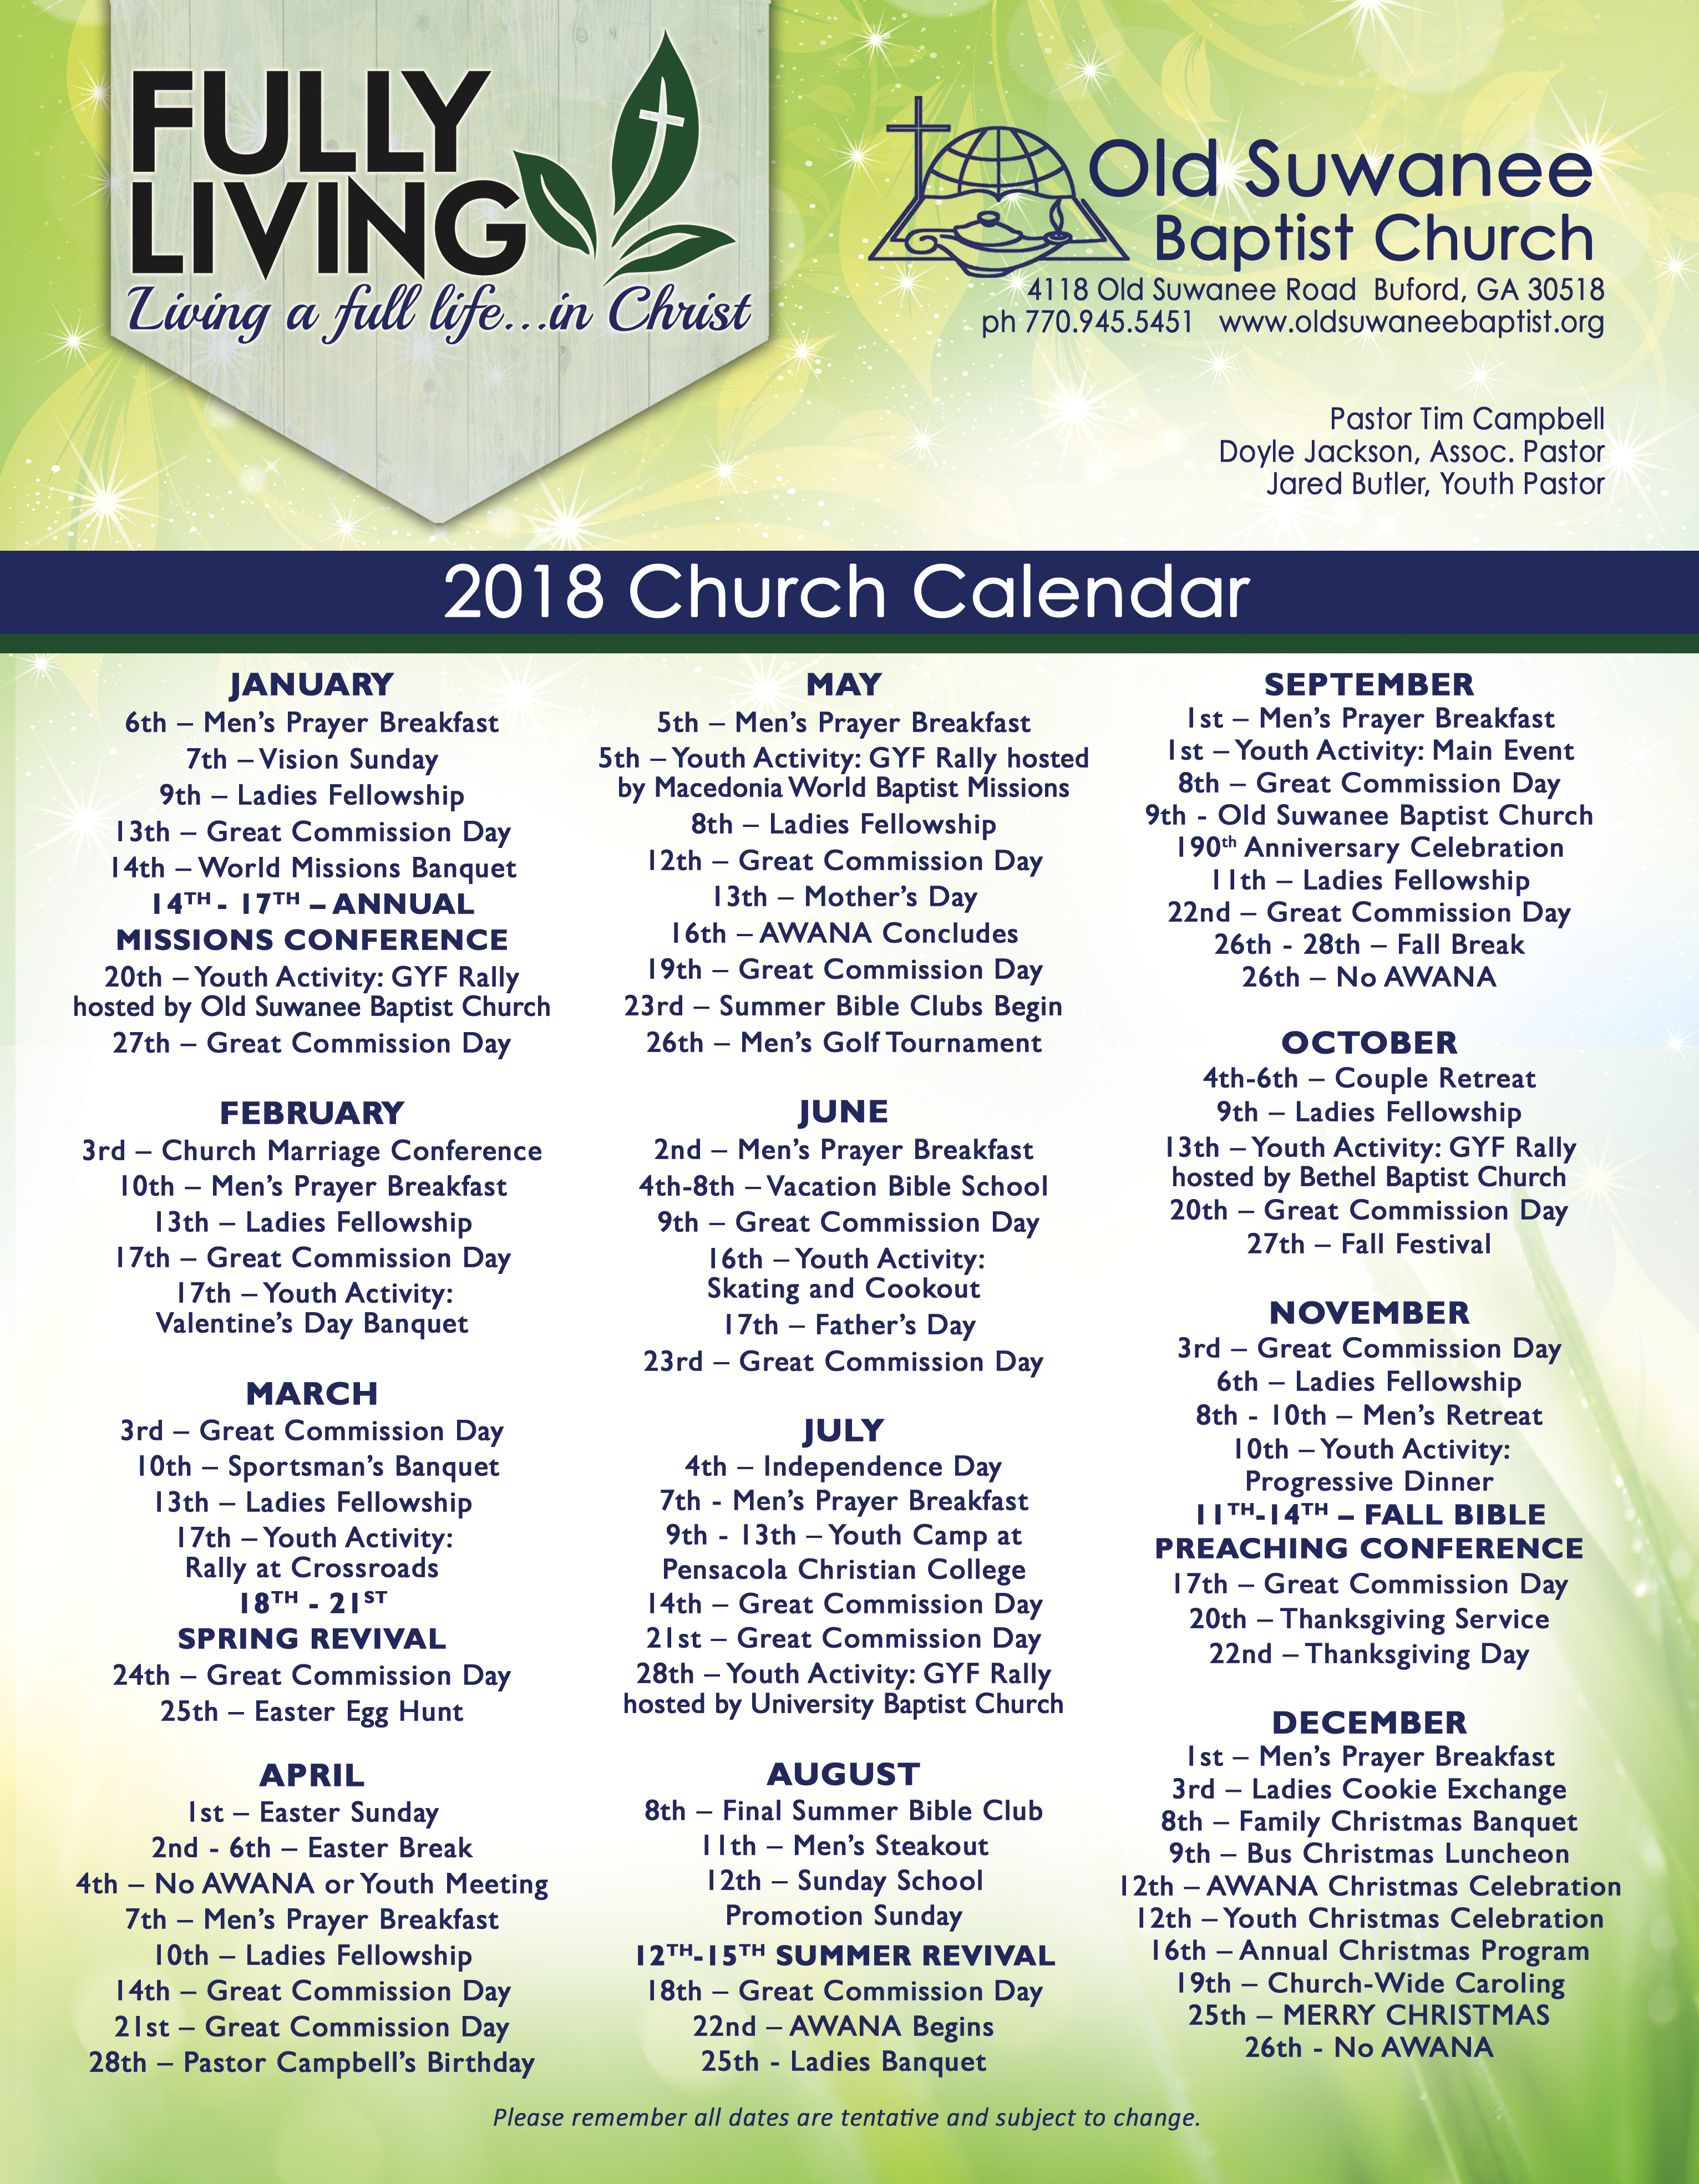 Upcoming Events - Old Suwanee Baptist Church